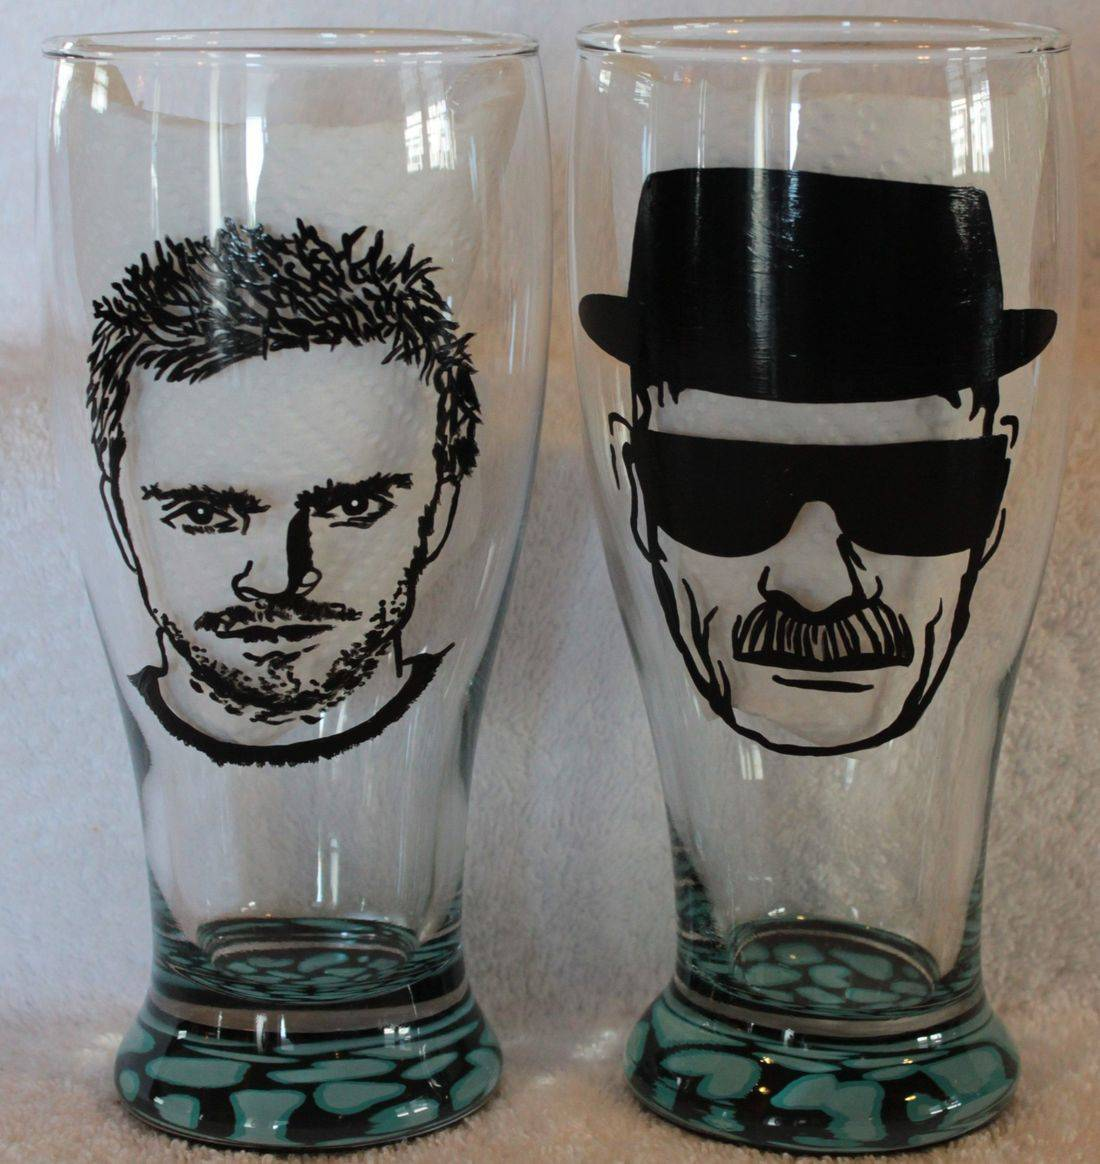 Heisenberg wine glass